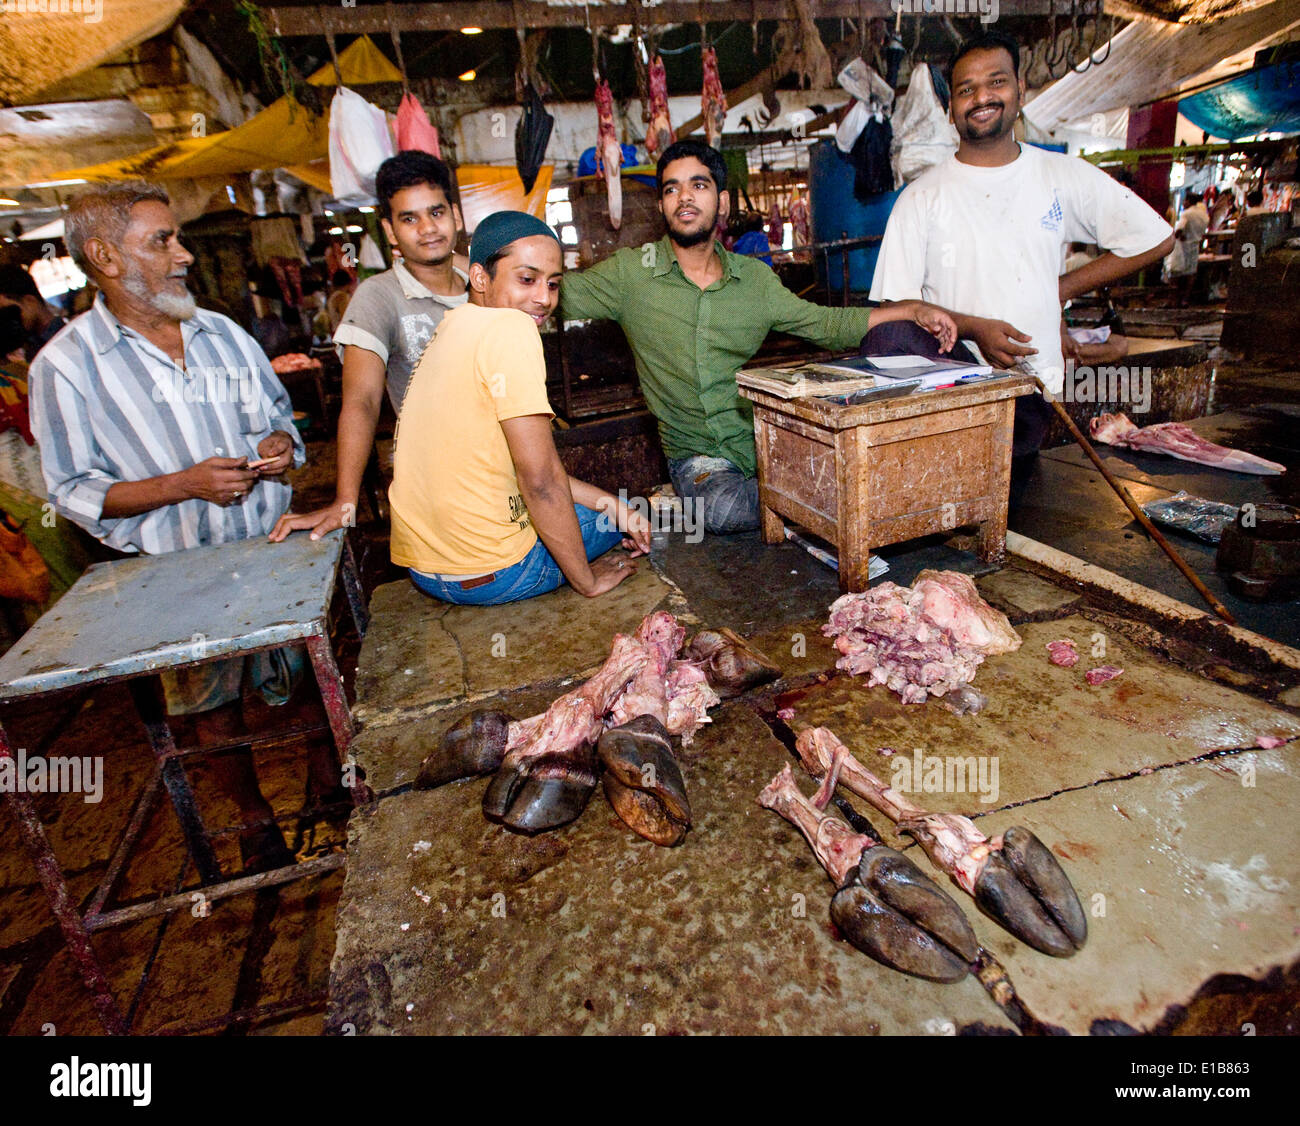 meat market stock images - photo #18